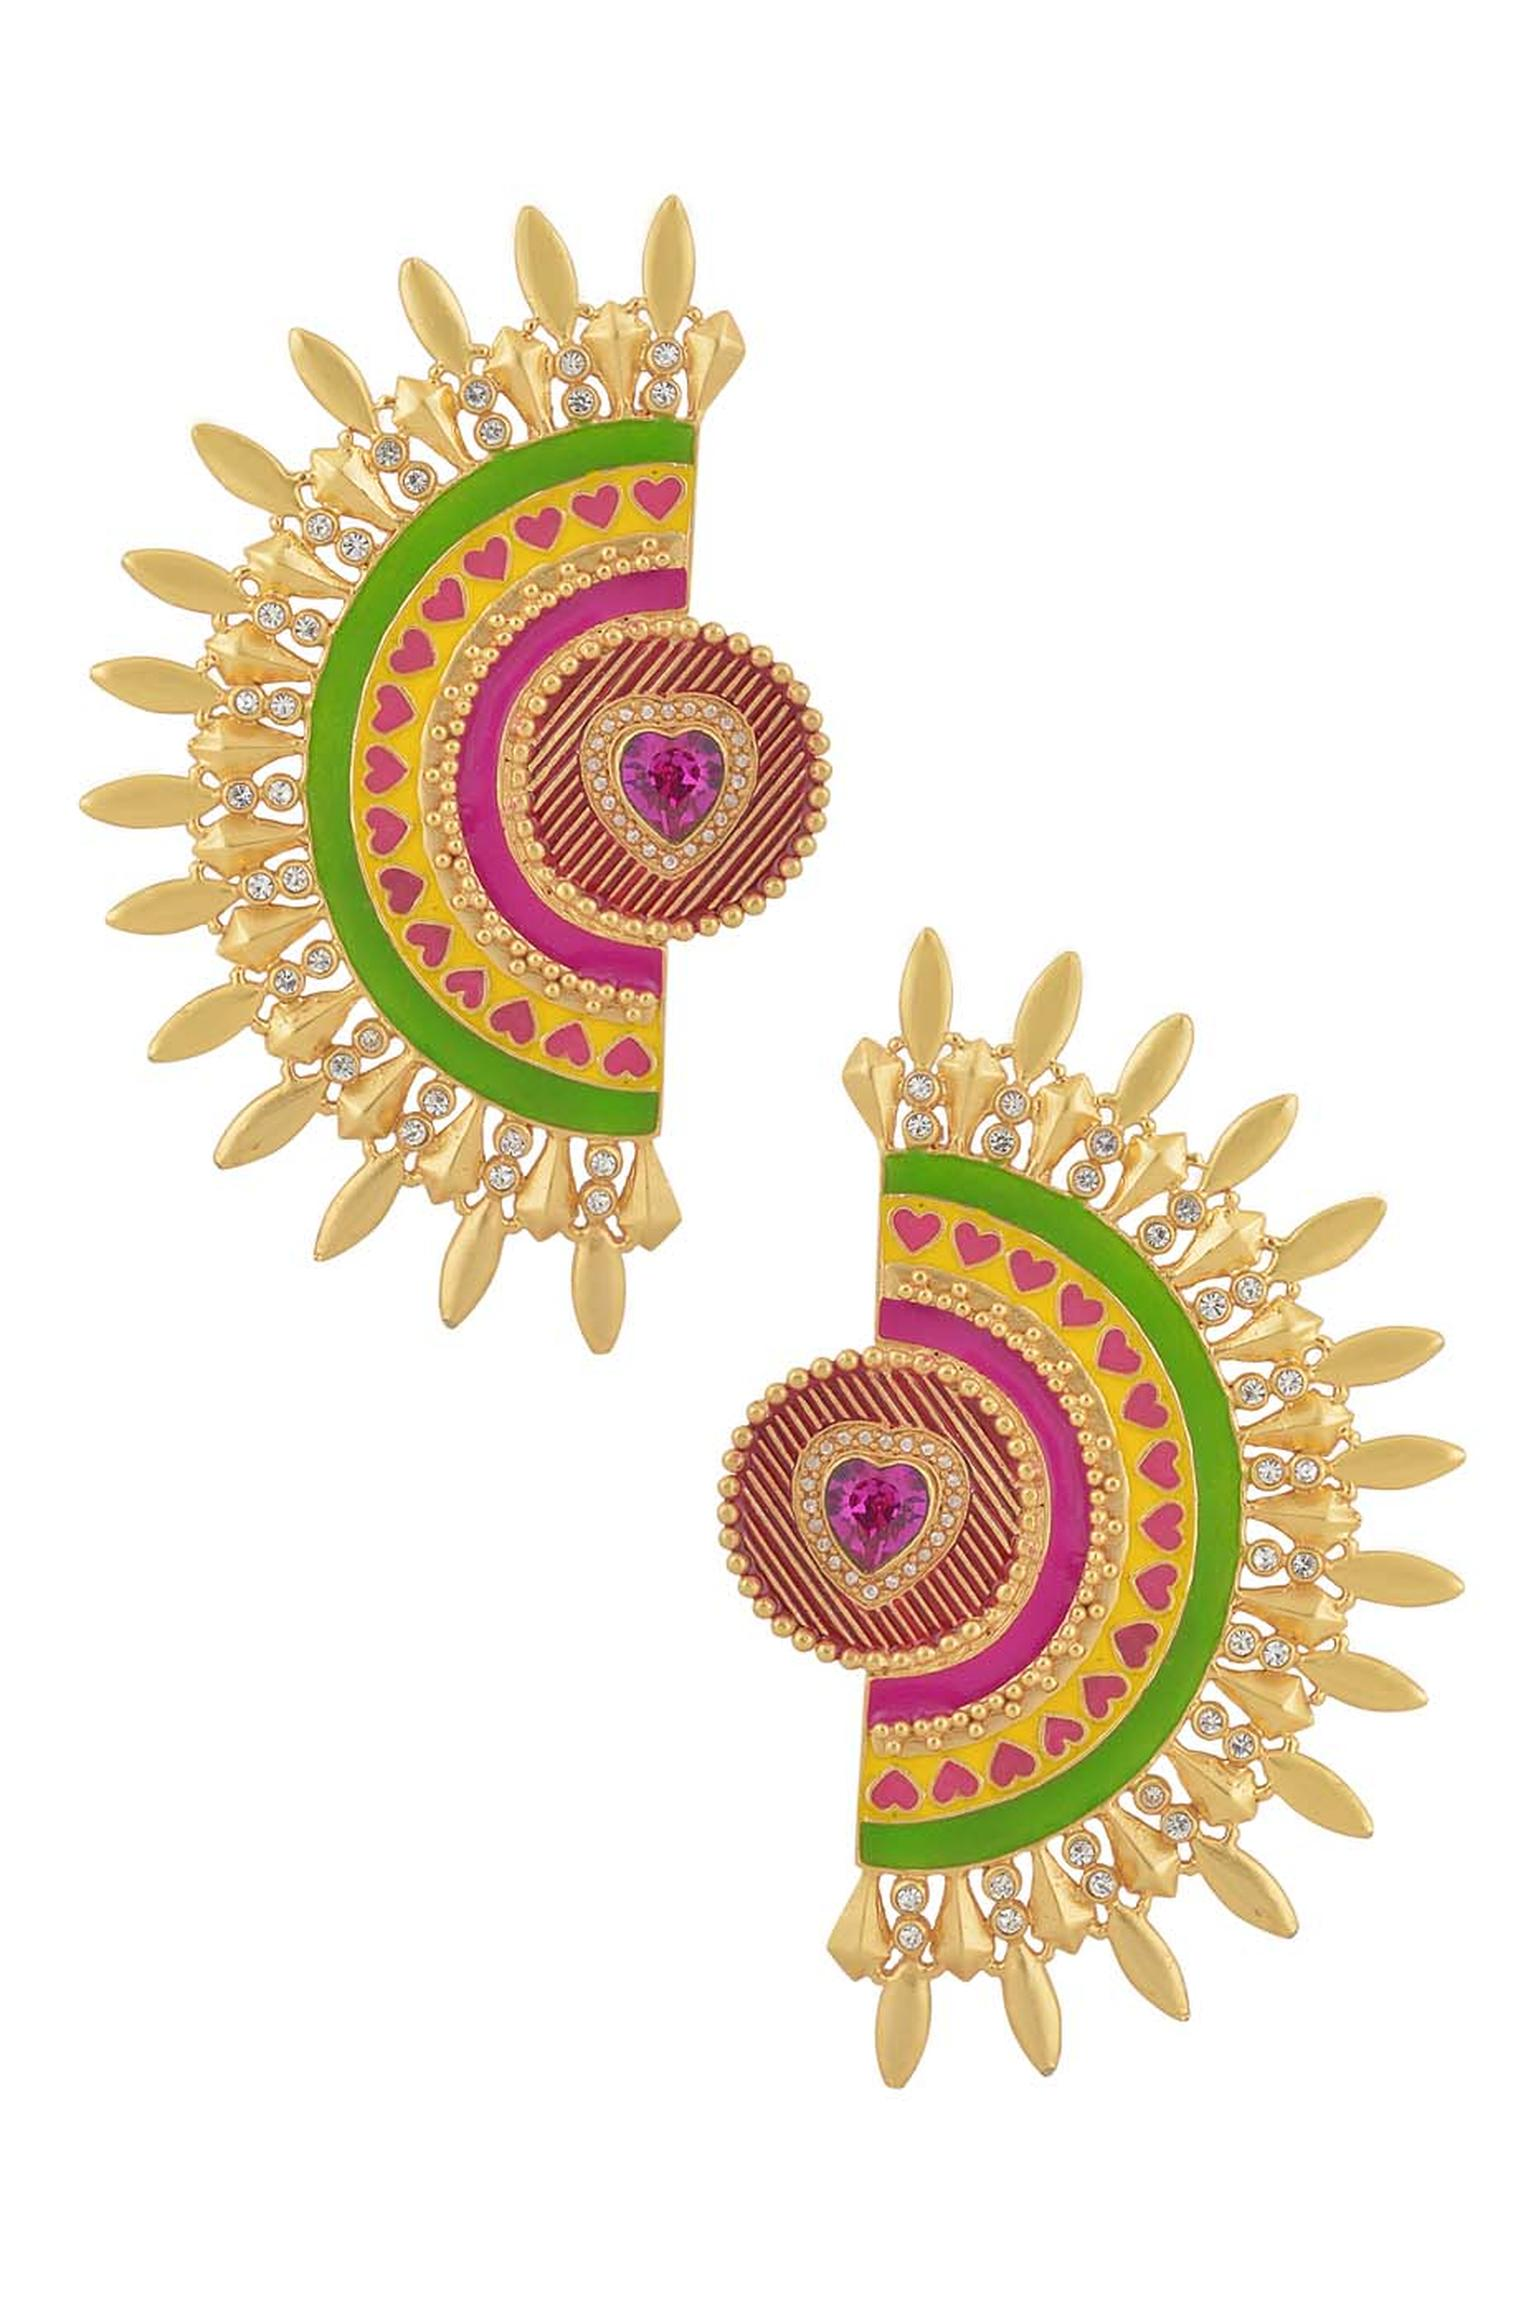 Amrapali and Manish Arora AW 2014-15 collection Rhea earrings.